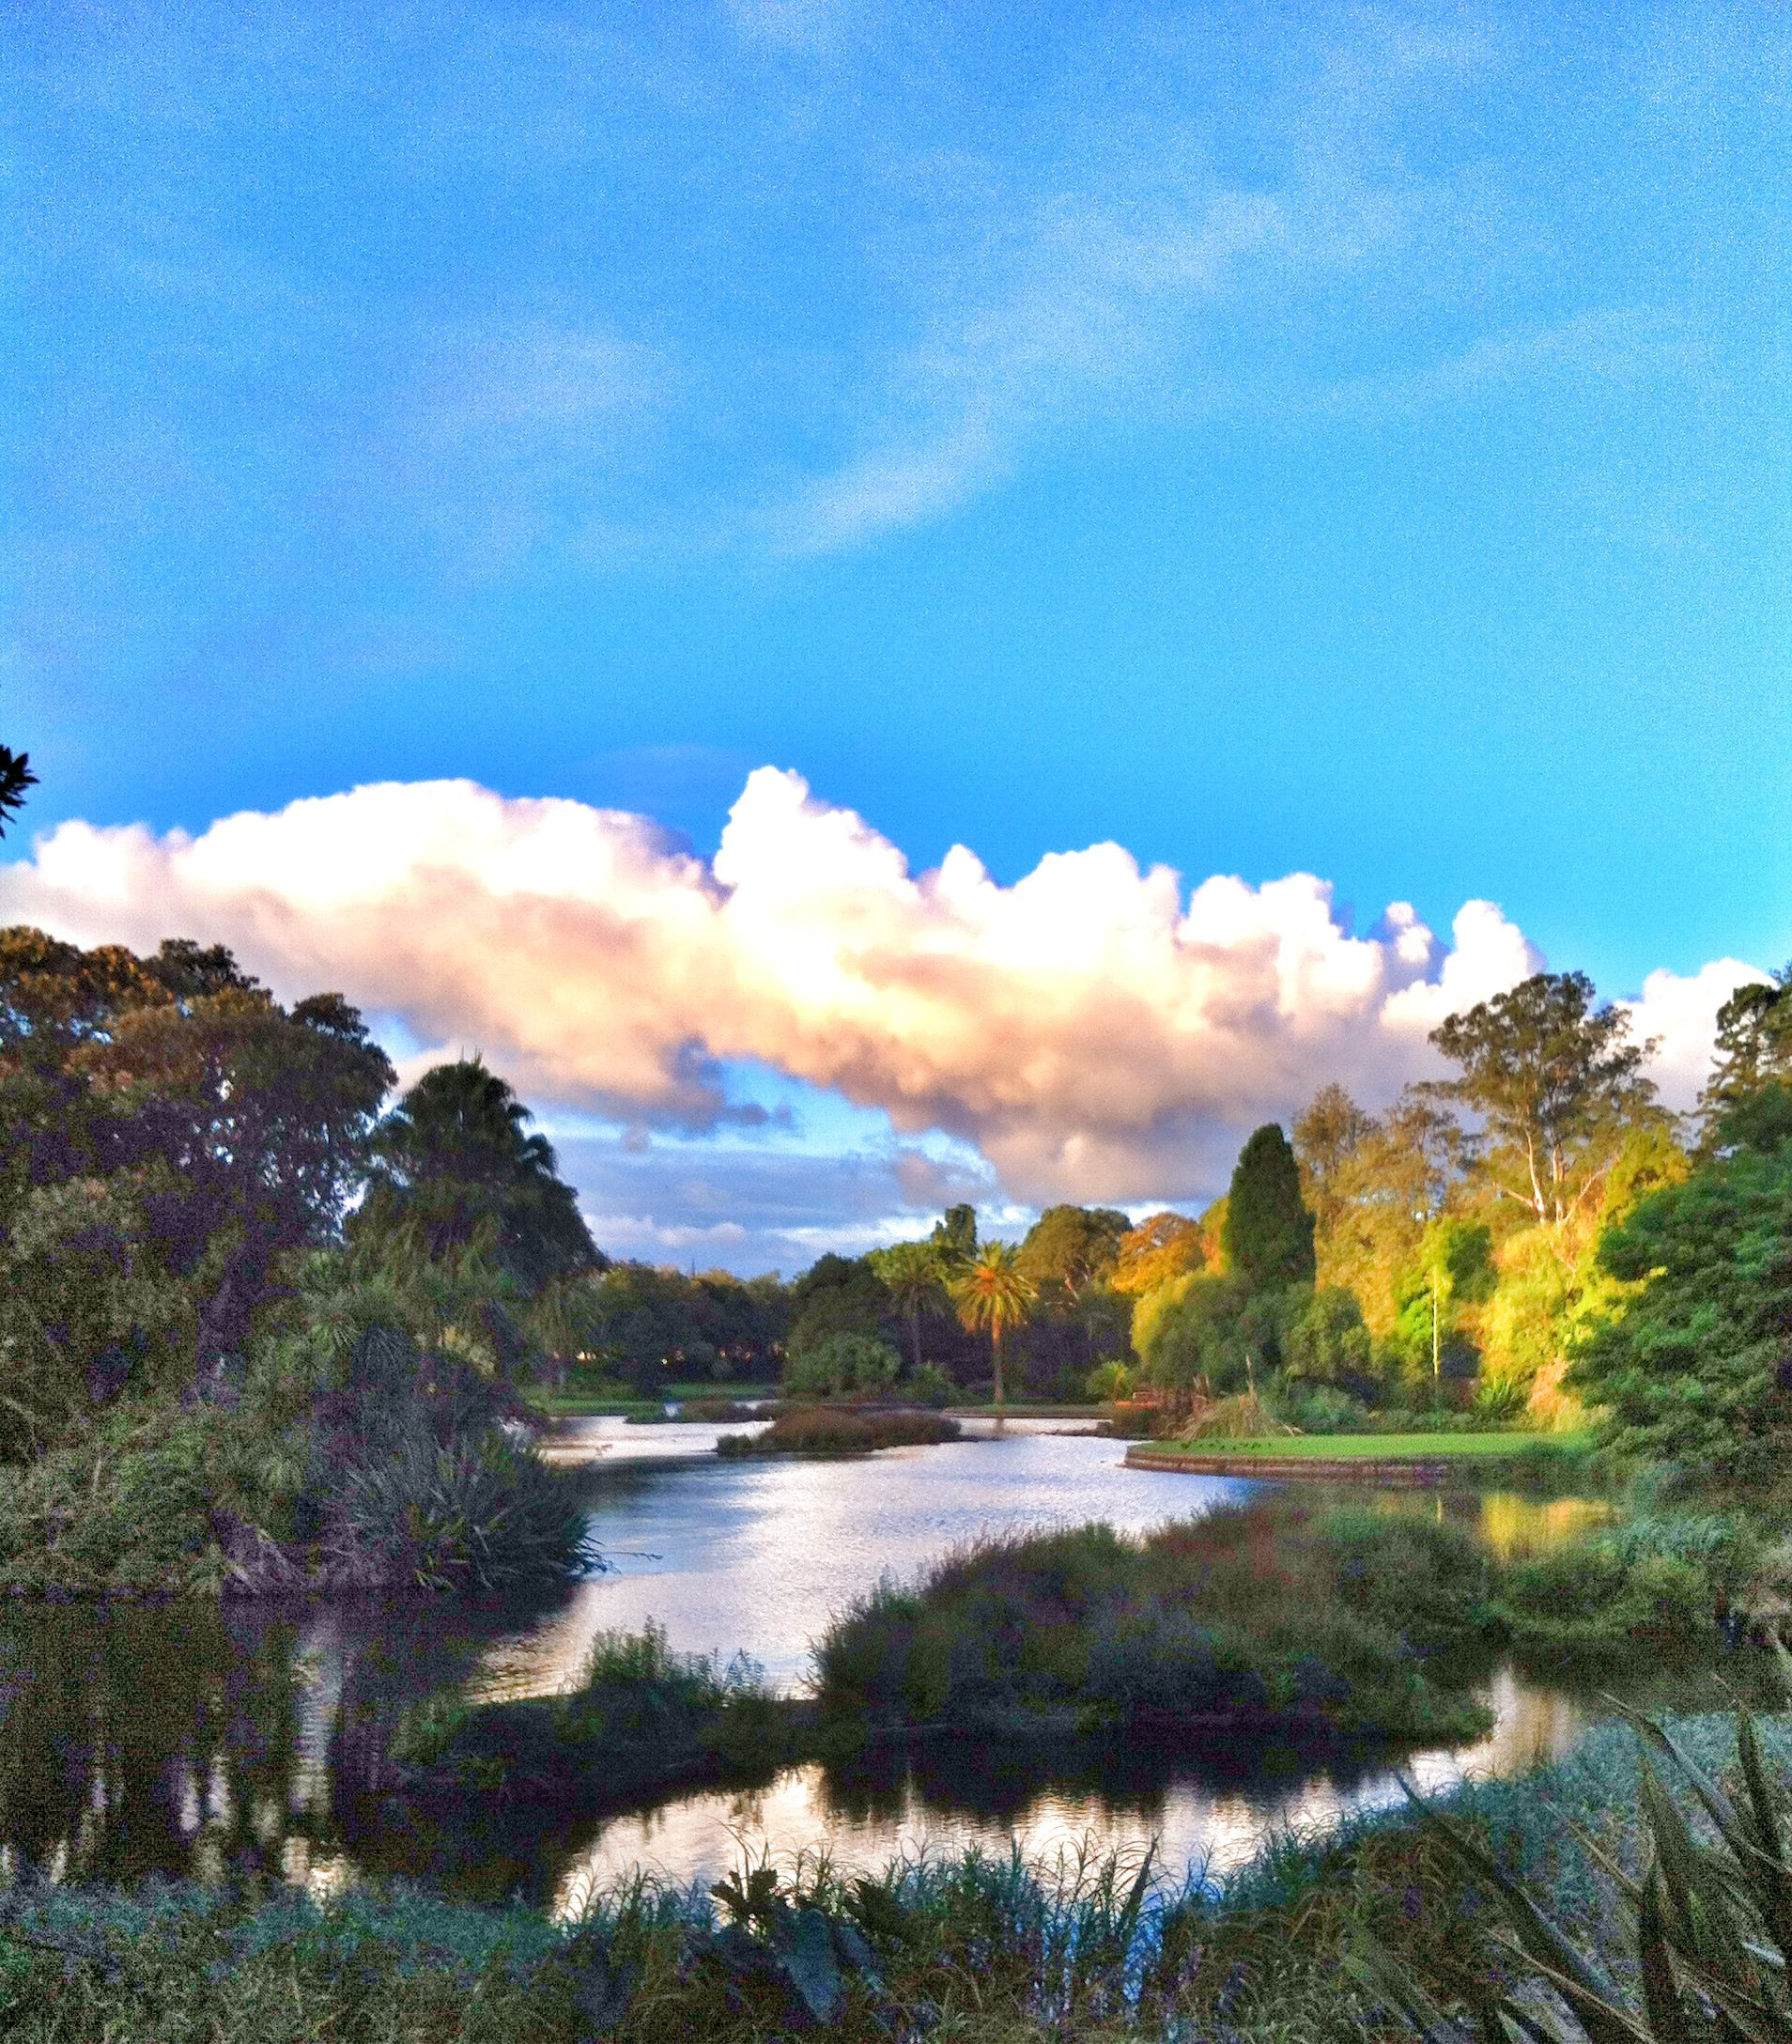 Royal Botanic Garden, Melbourne, Australia Sky after the